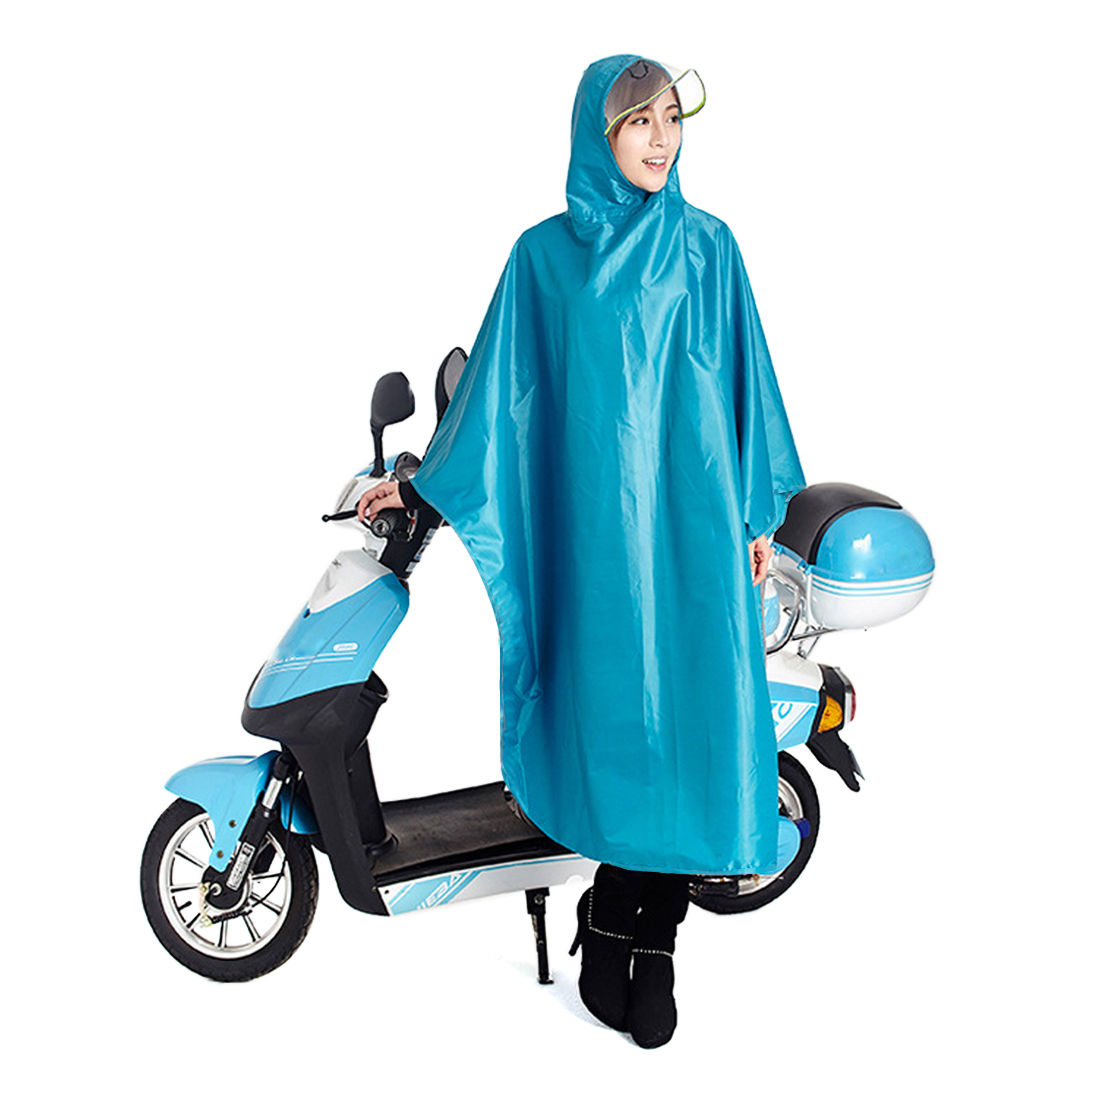 Click here to buy Sky Bule Adult Poncho Cycling Raincoat Bicycle Hooded Waterproof Rain Coat Cover.